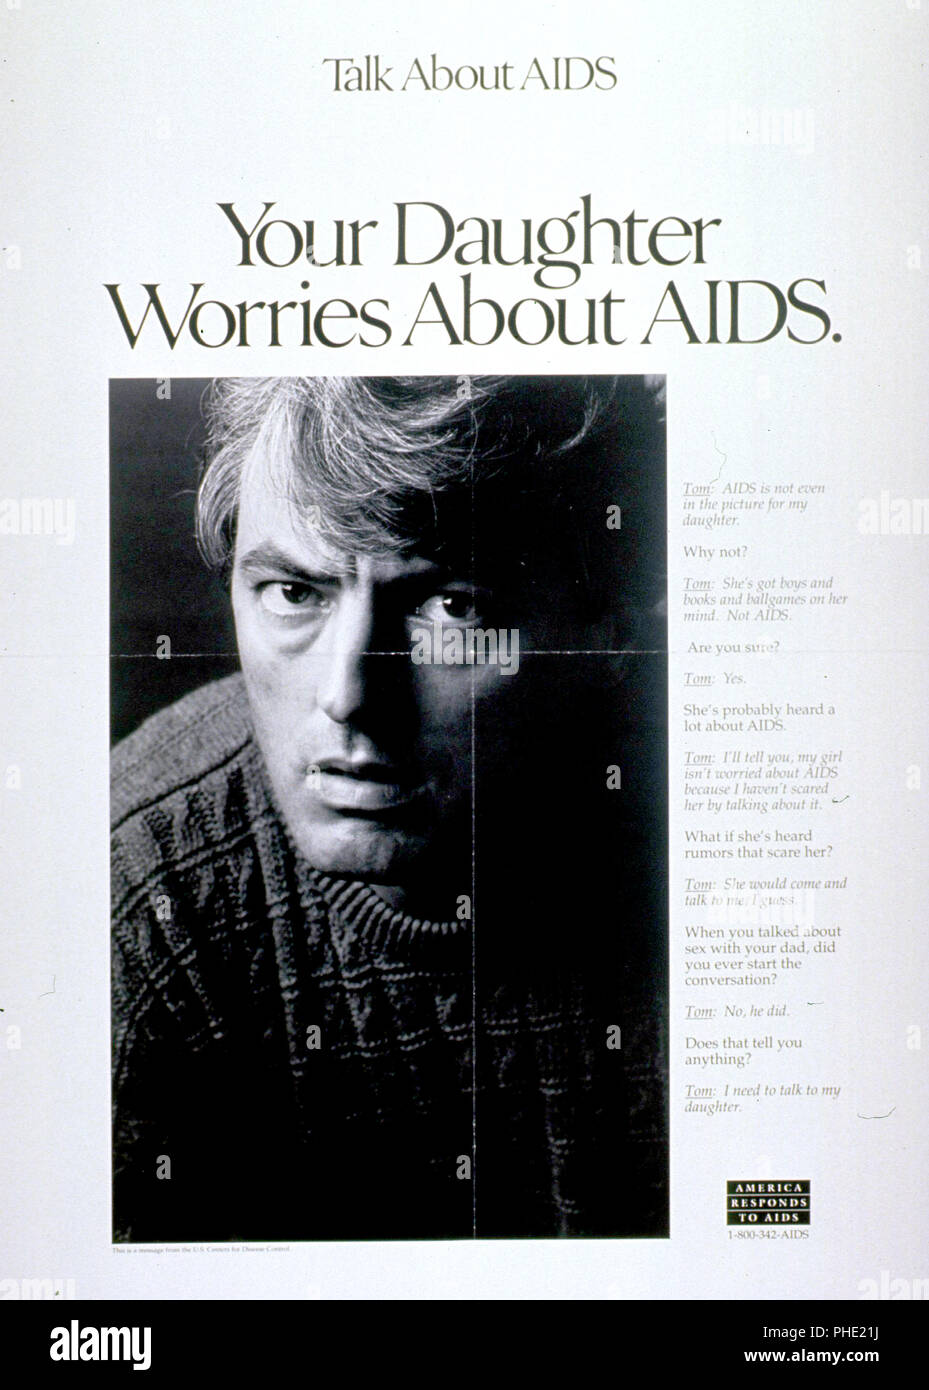 Your daughter worries about AIDS Poster 1980s - Stock Image